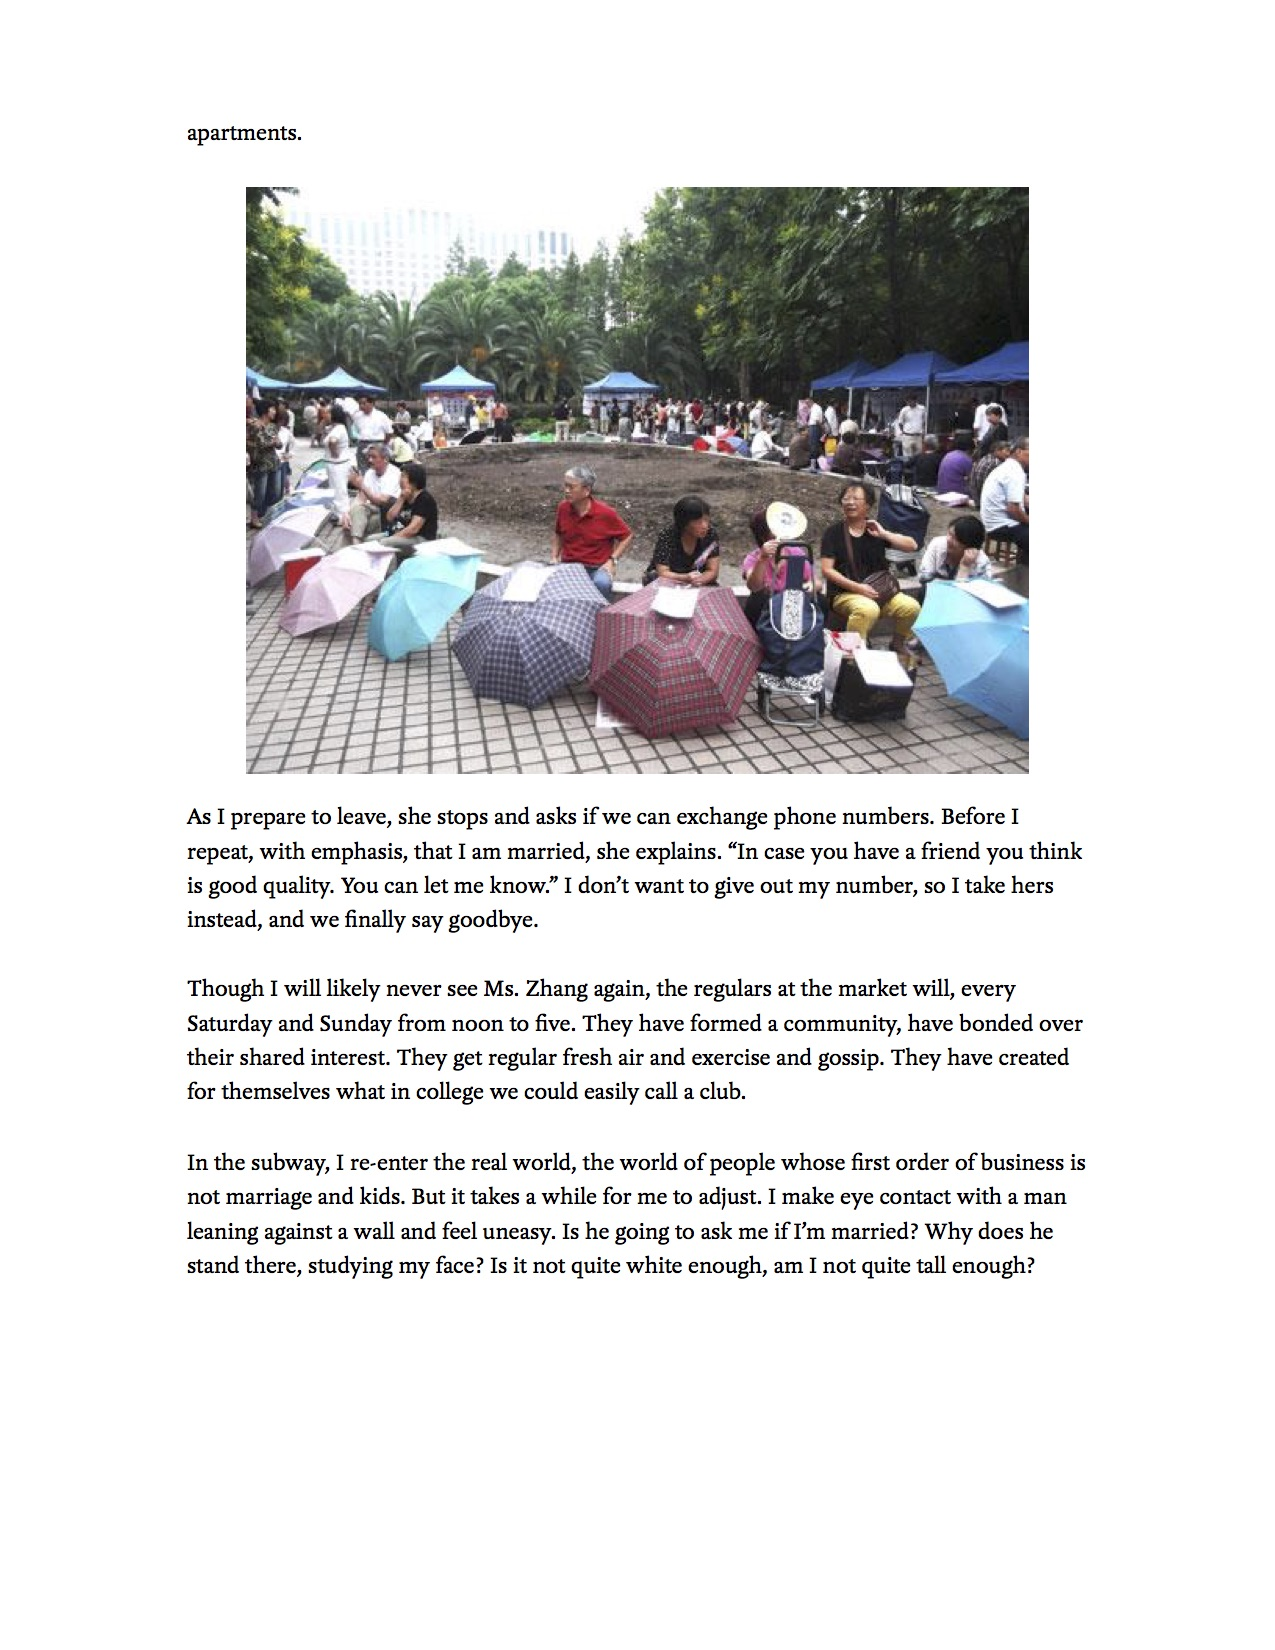 9Pocket_ The Lonely Hearts Club_ Shanghai's Marriage Market in the Age Of Tinder.jpg